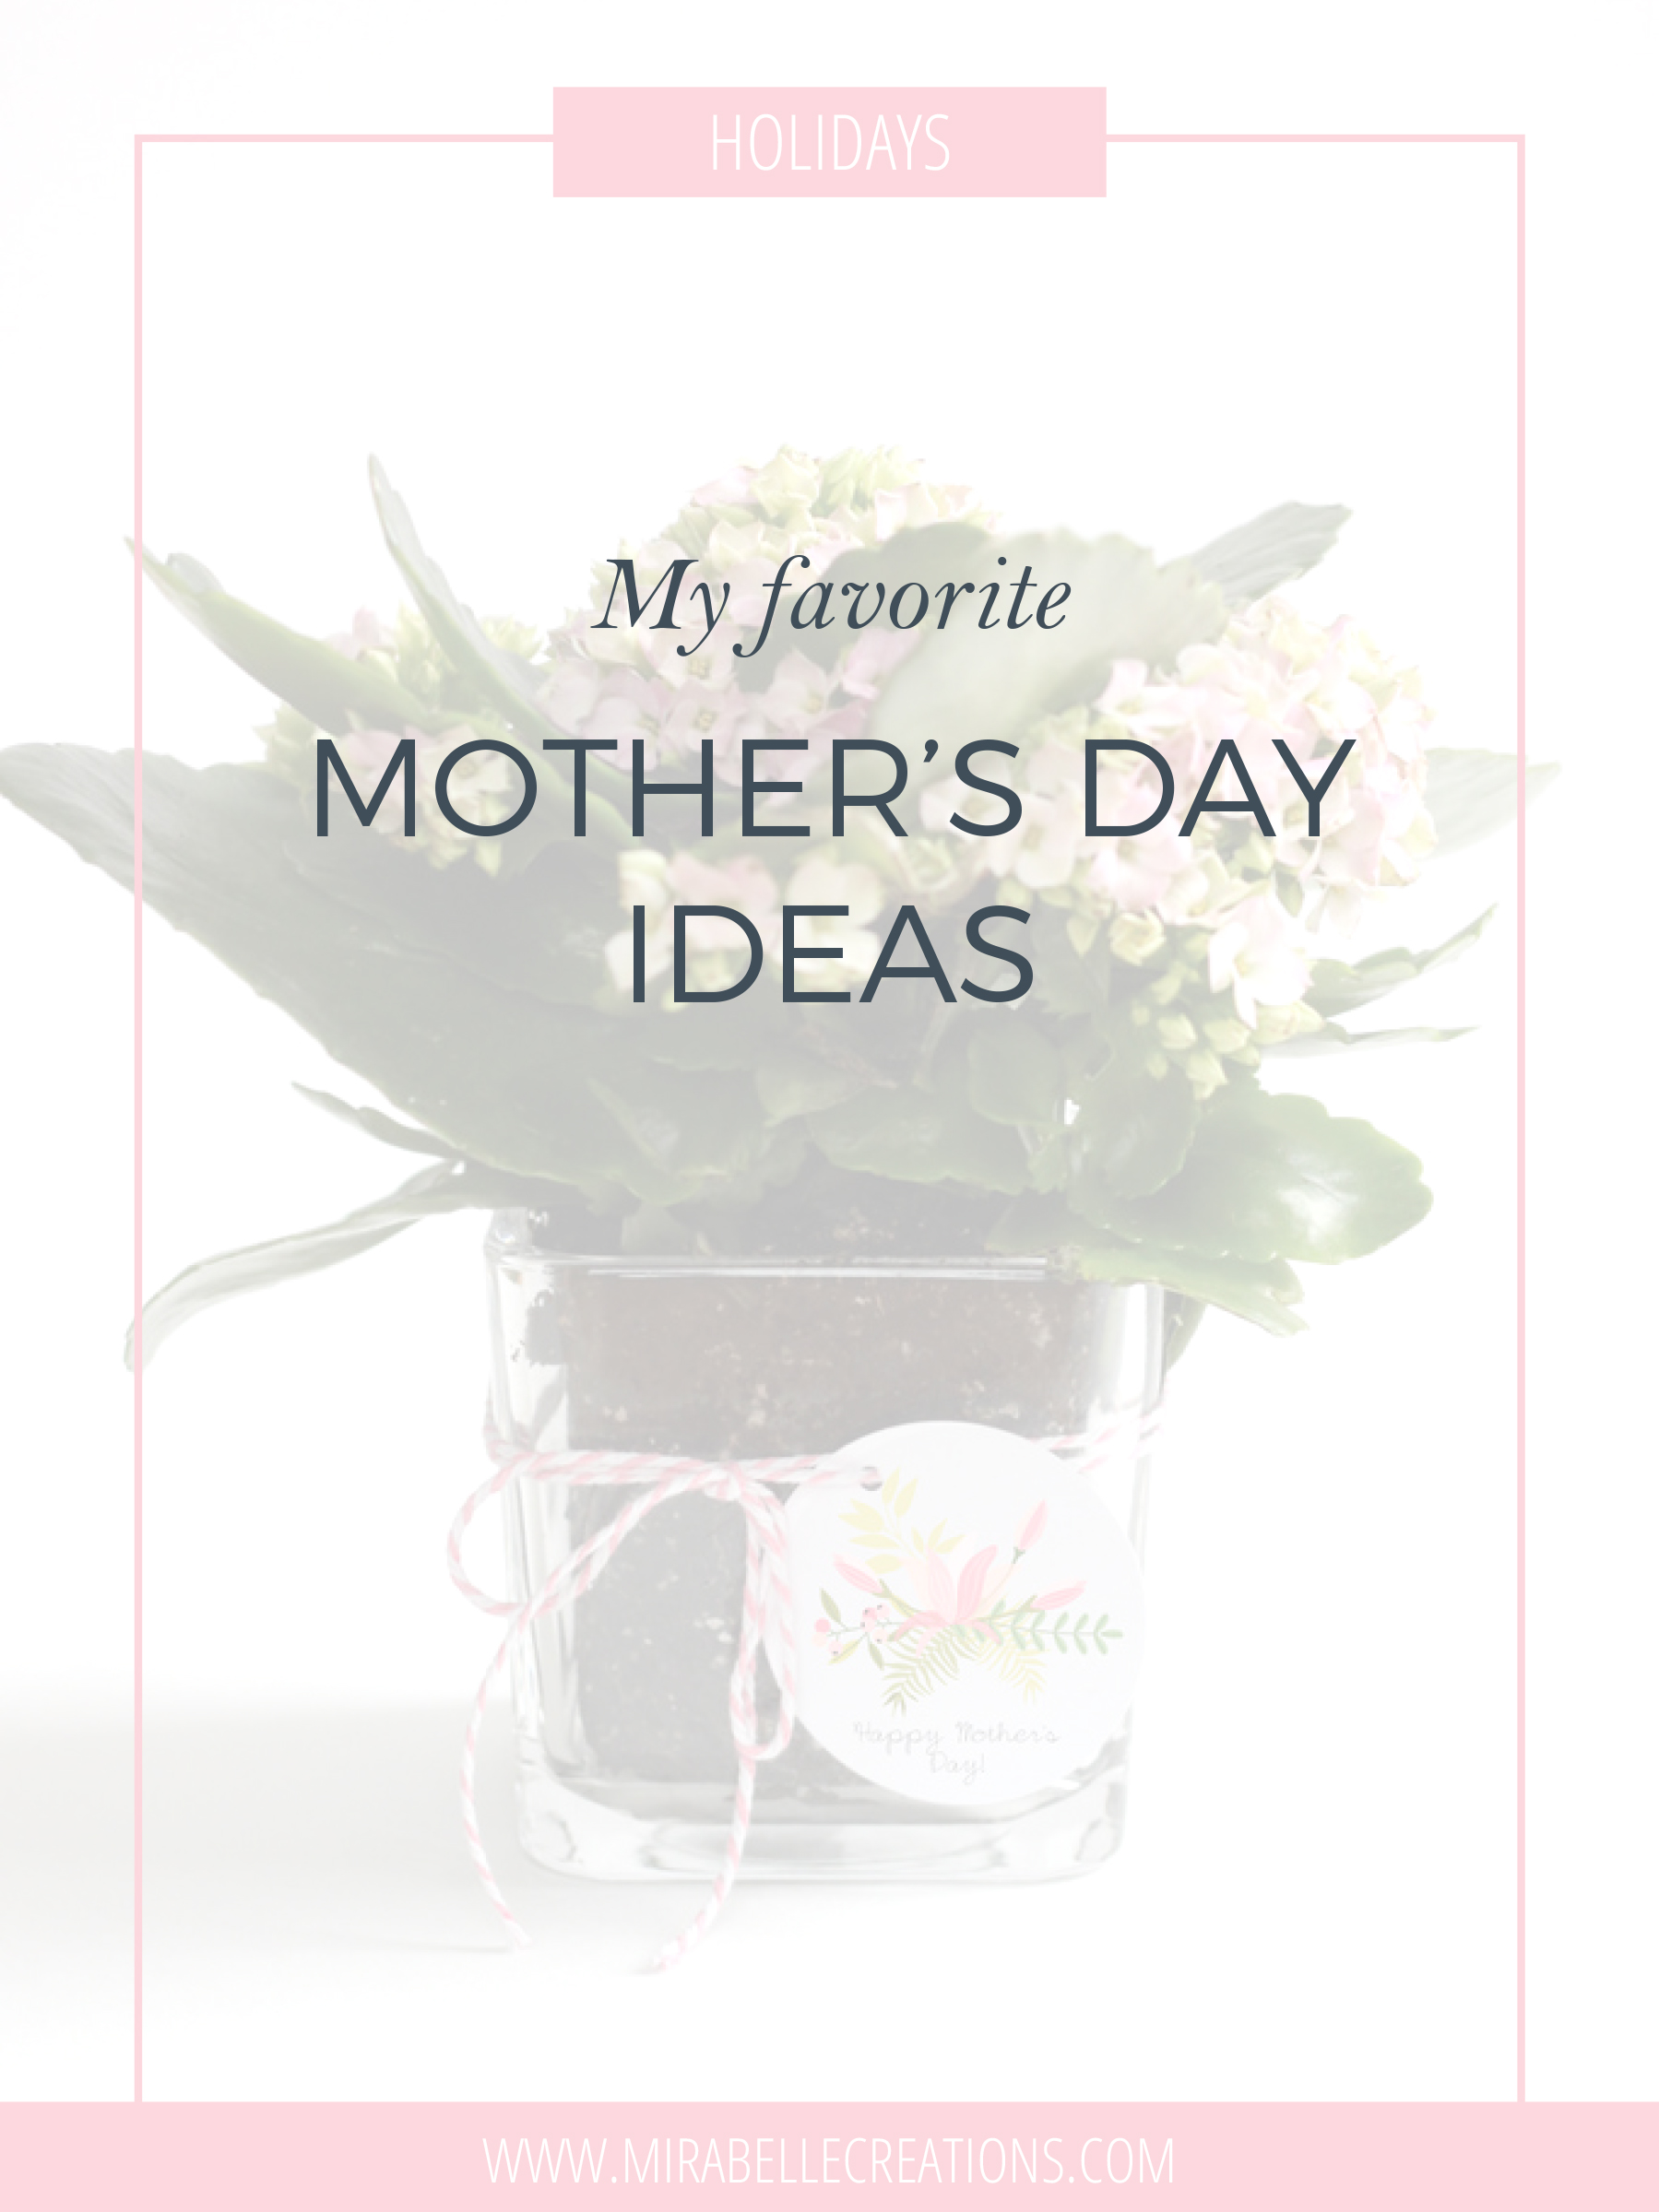 Mother's-day-ideas-mirabelle-creations